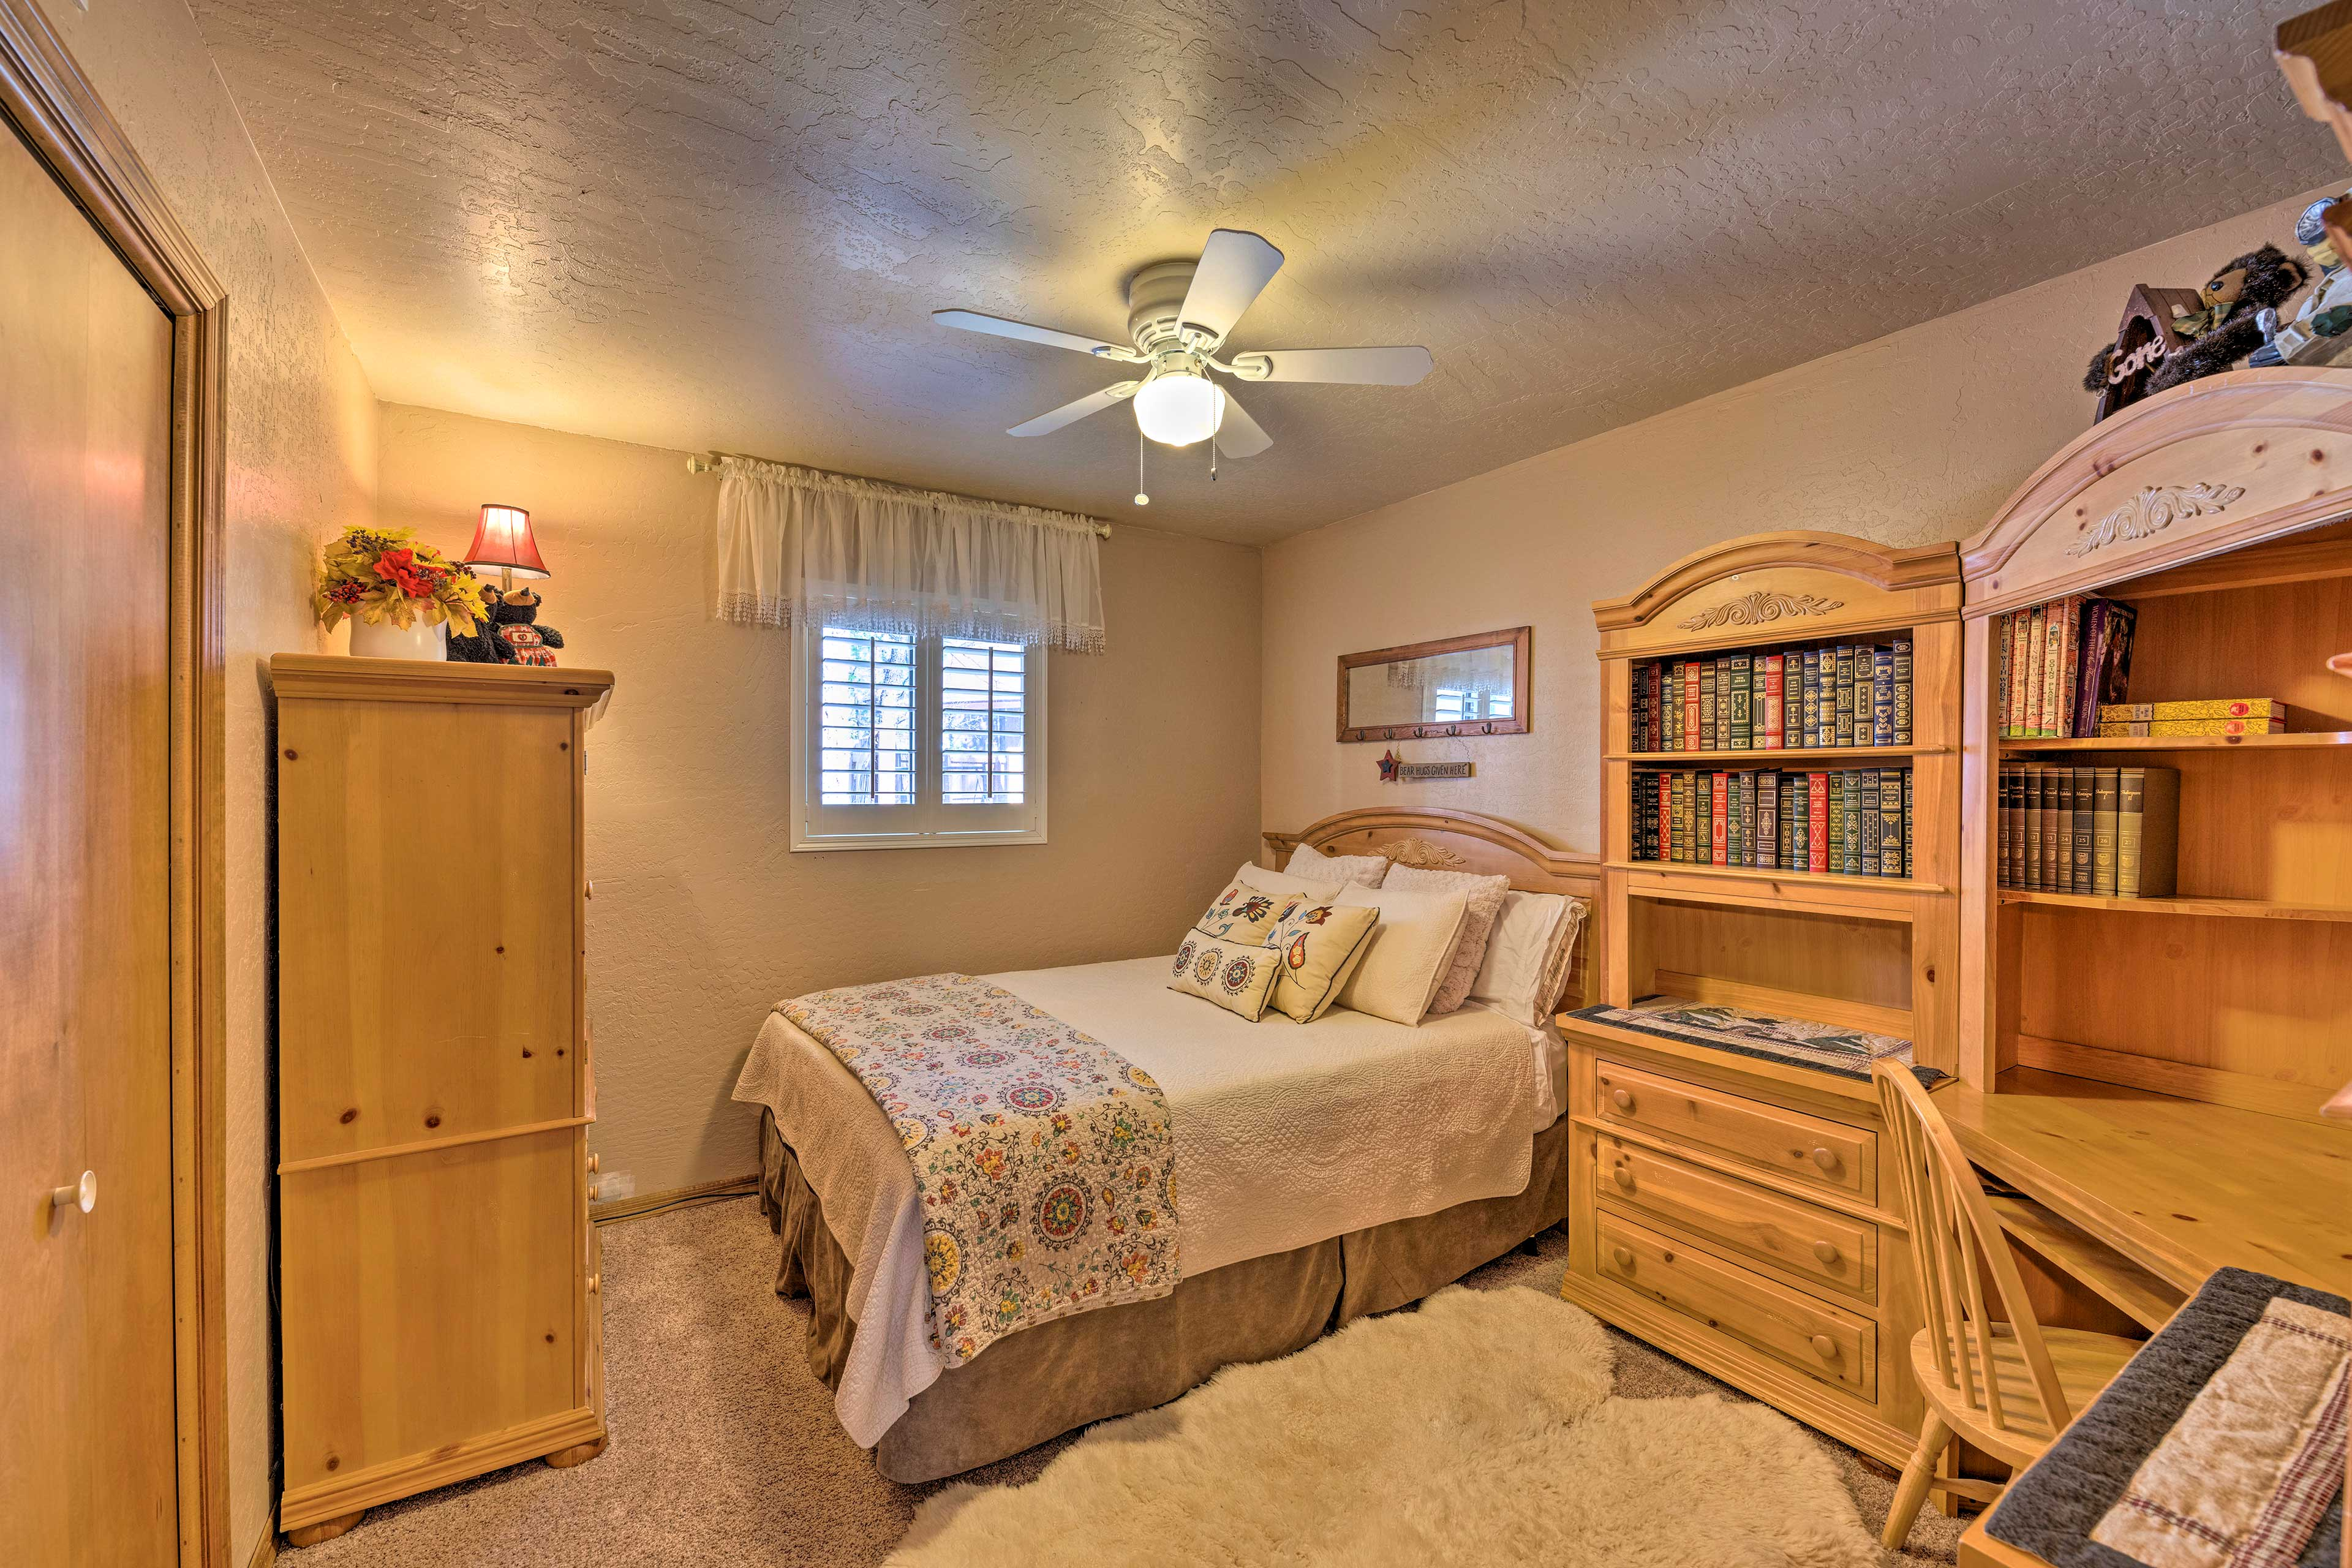 The second bedroom has space for 2.